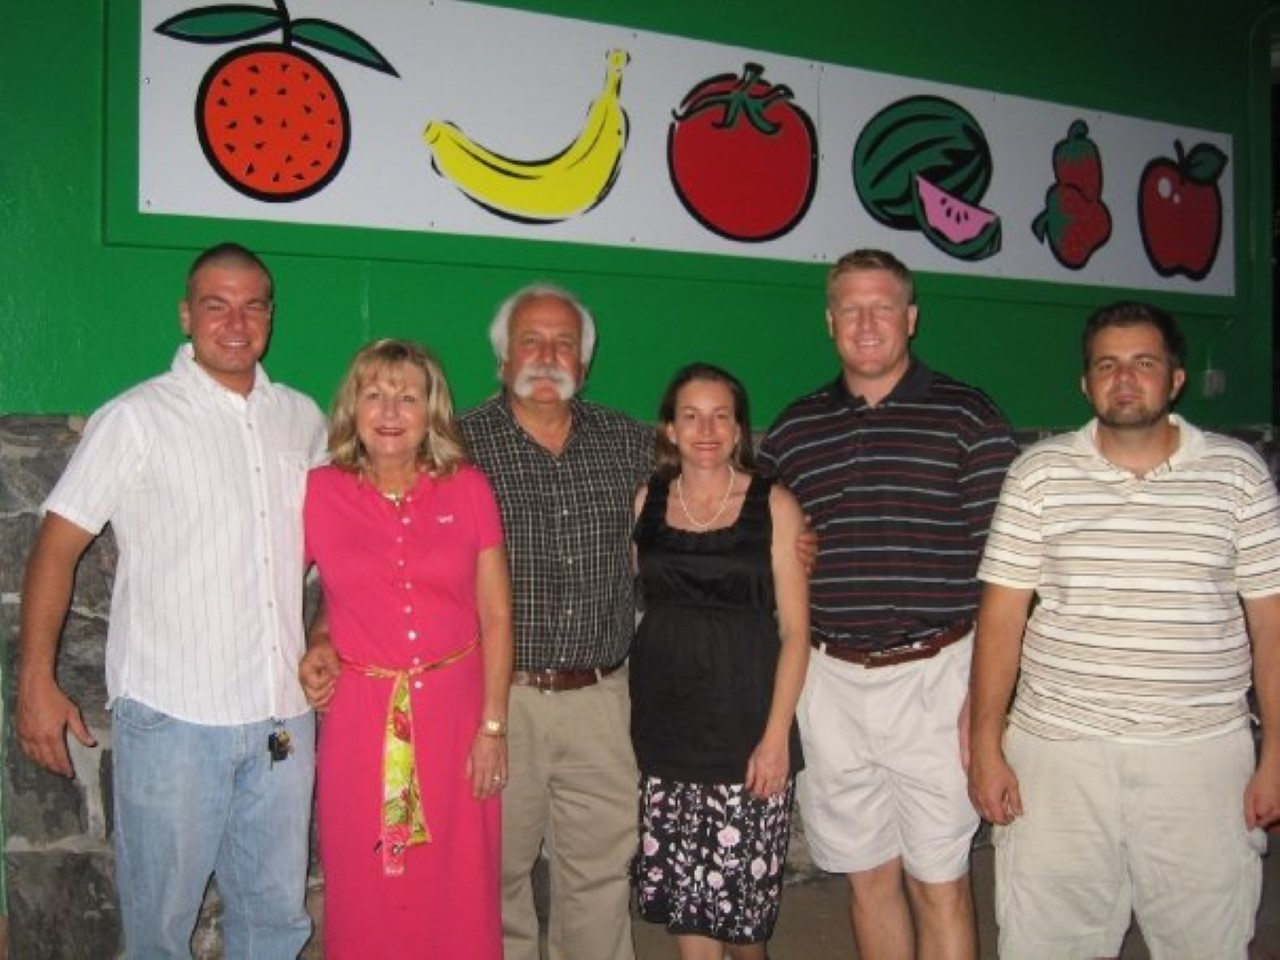 Our family posing for a picture in front of our new store Tampa Bay Farmers Market opening May 2009